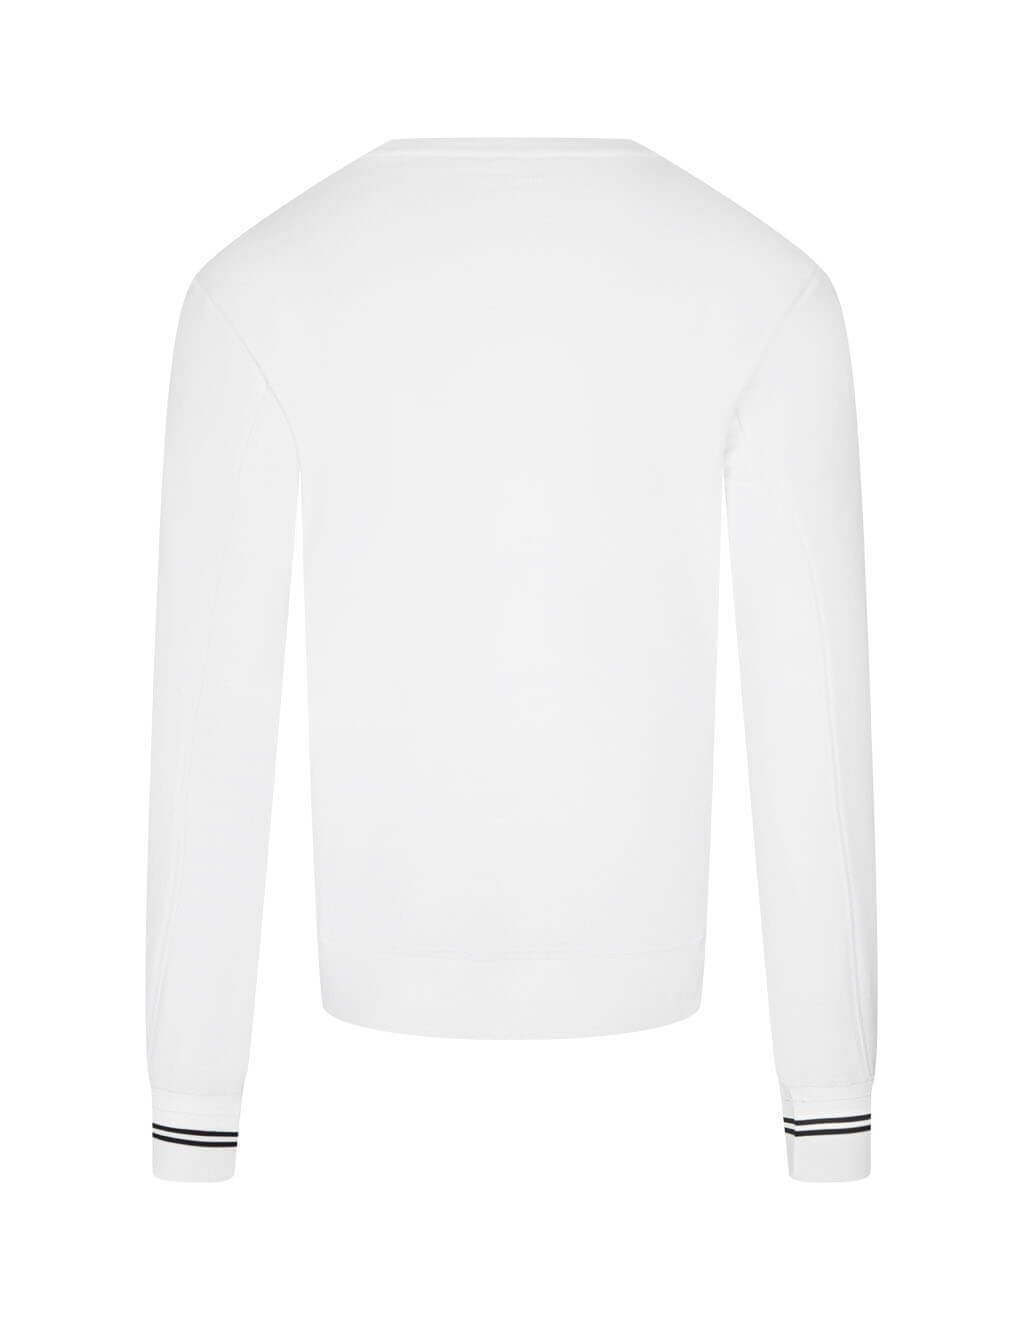 mens neil barrett logo no logo crewneck sweatshirt in white and black PBJS662S-P541S 1849